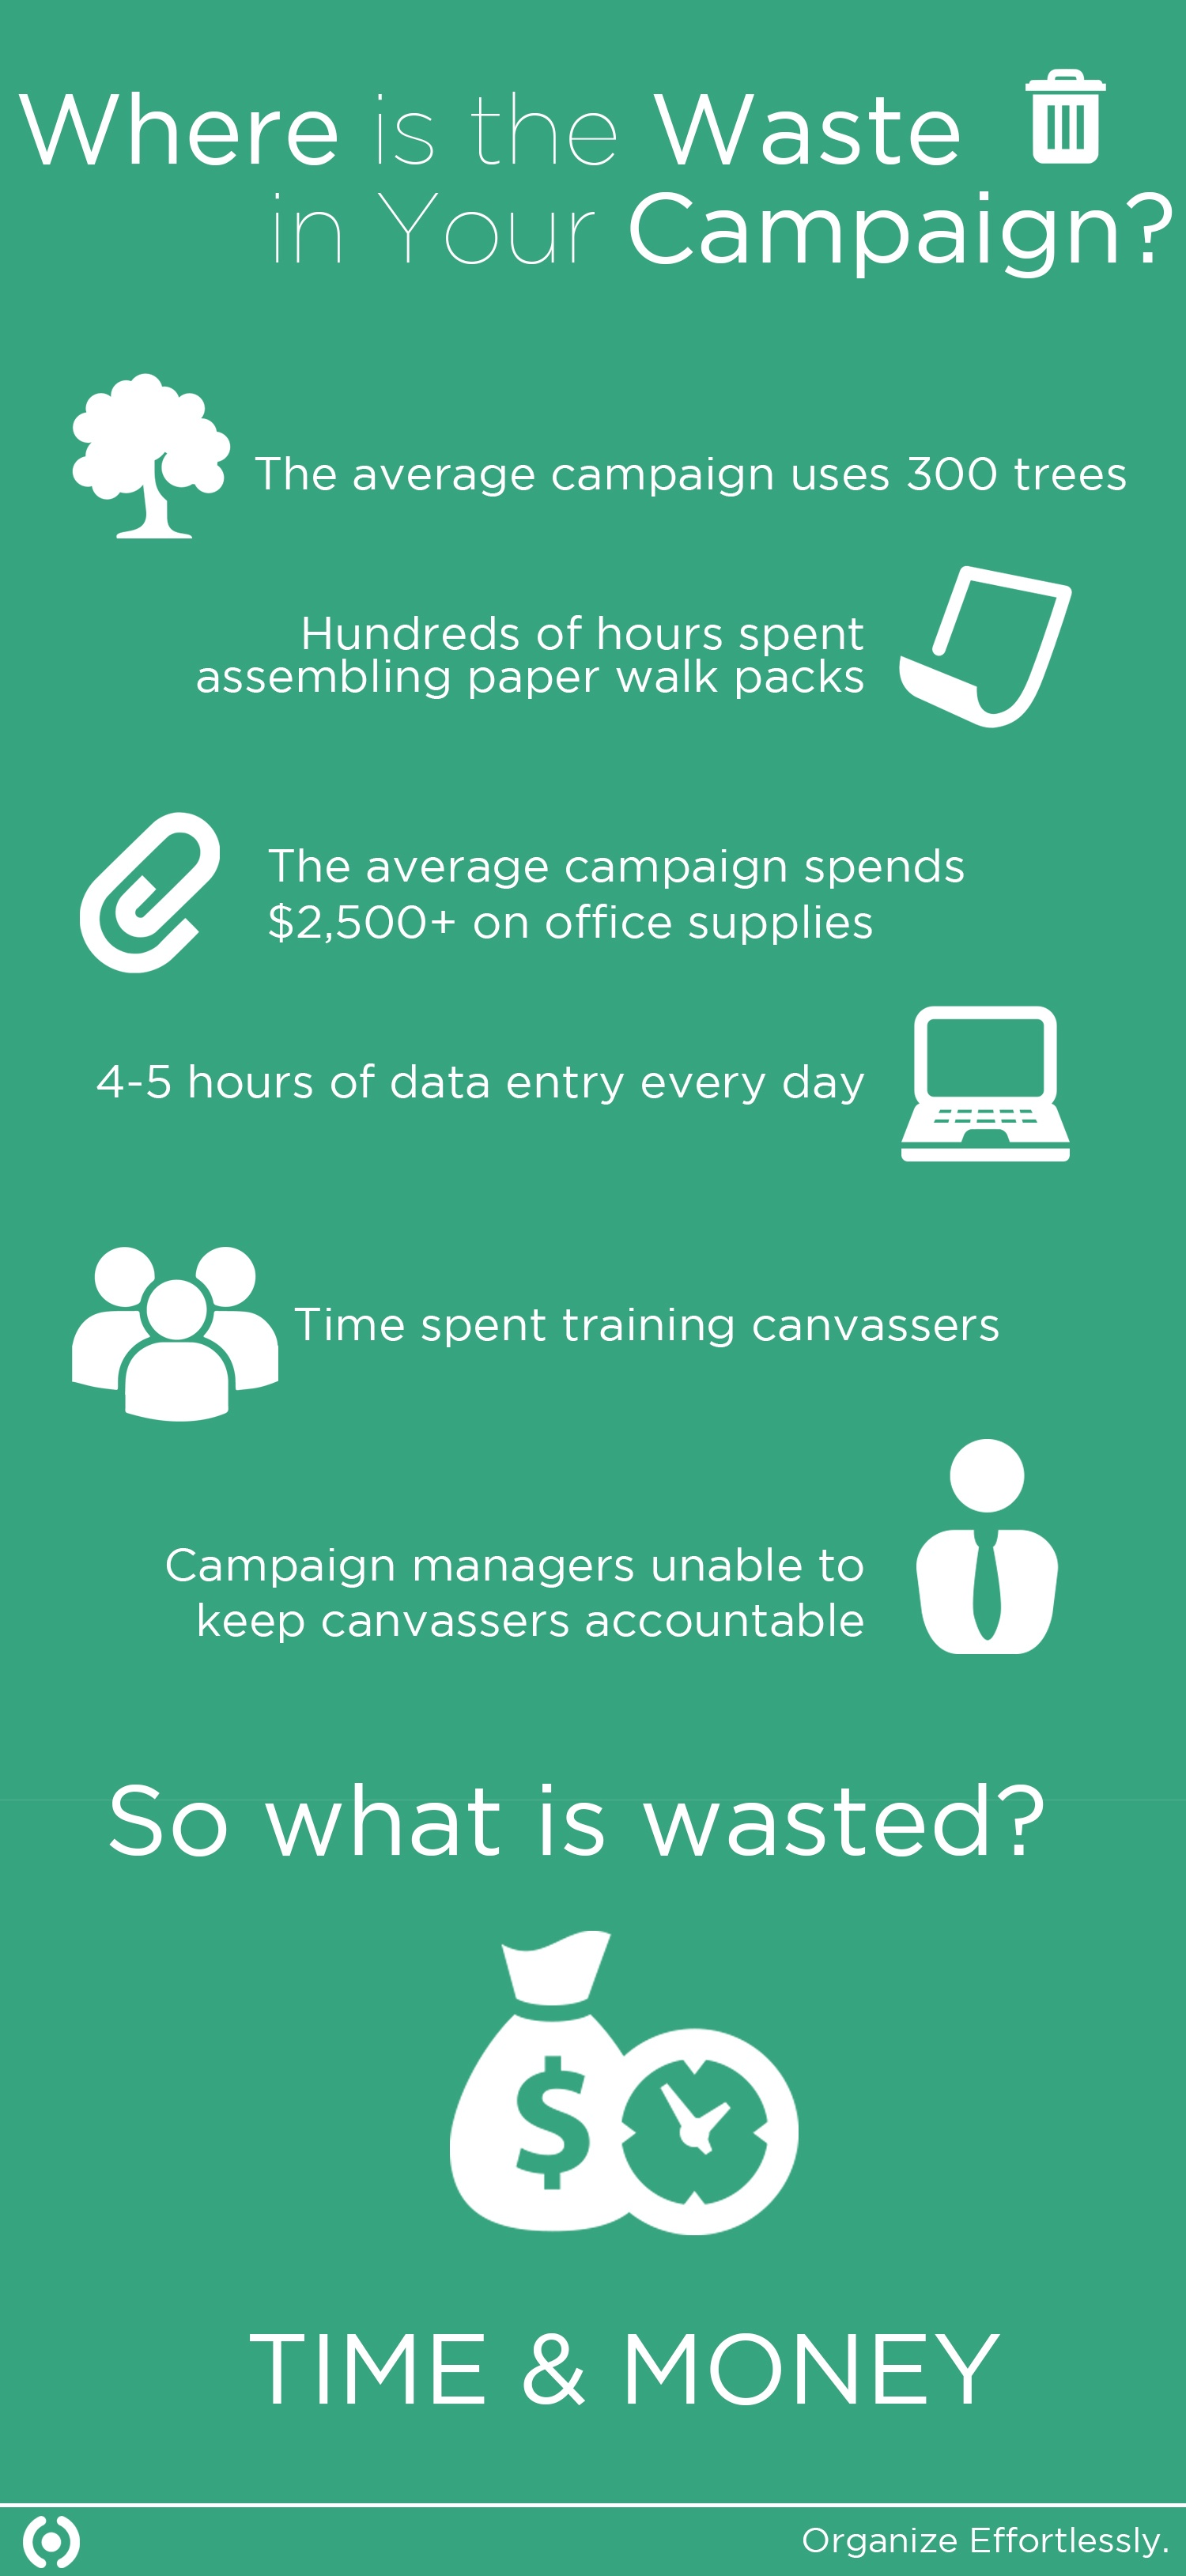 Where_is_the_Waste_Infographic.jpg